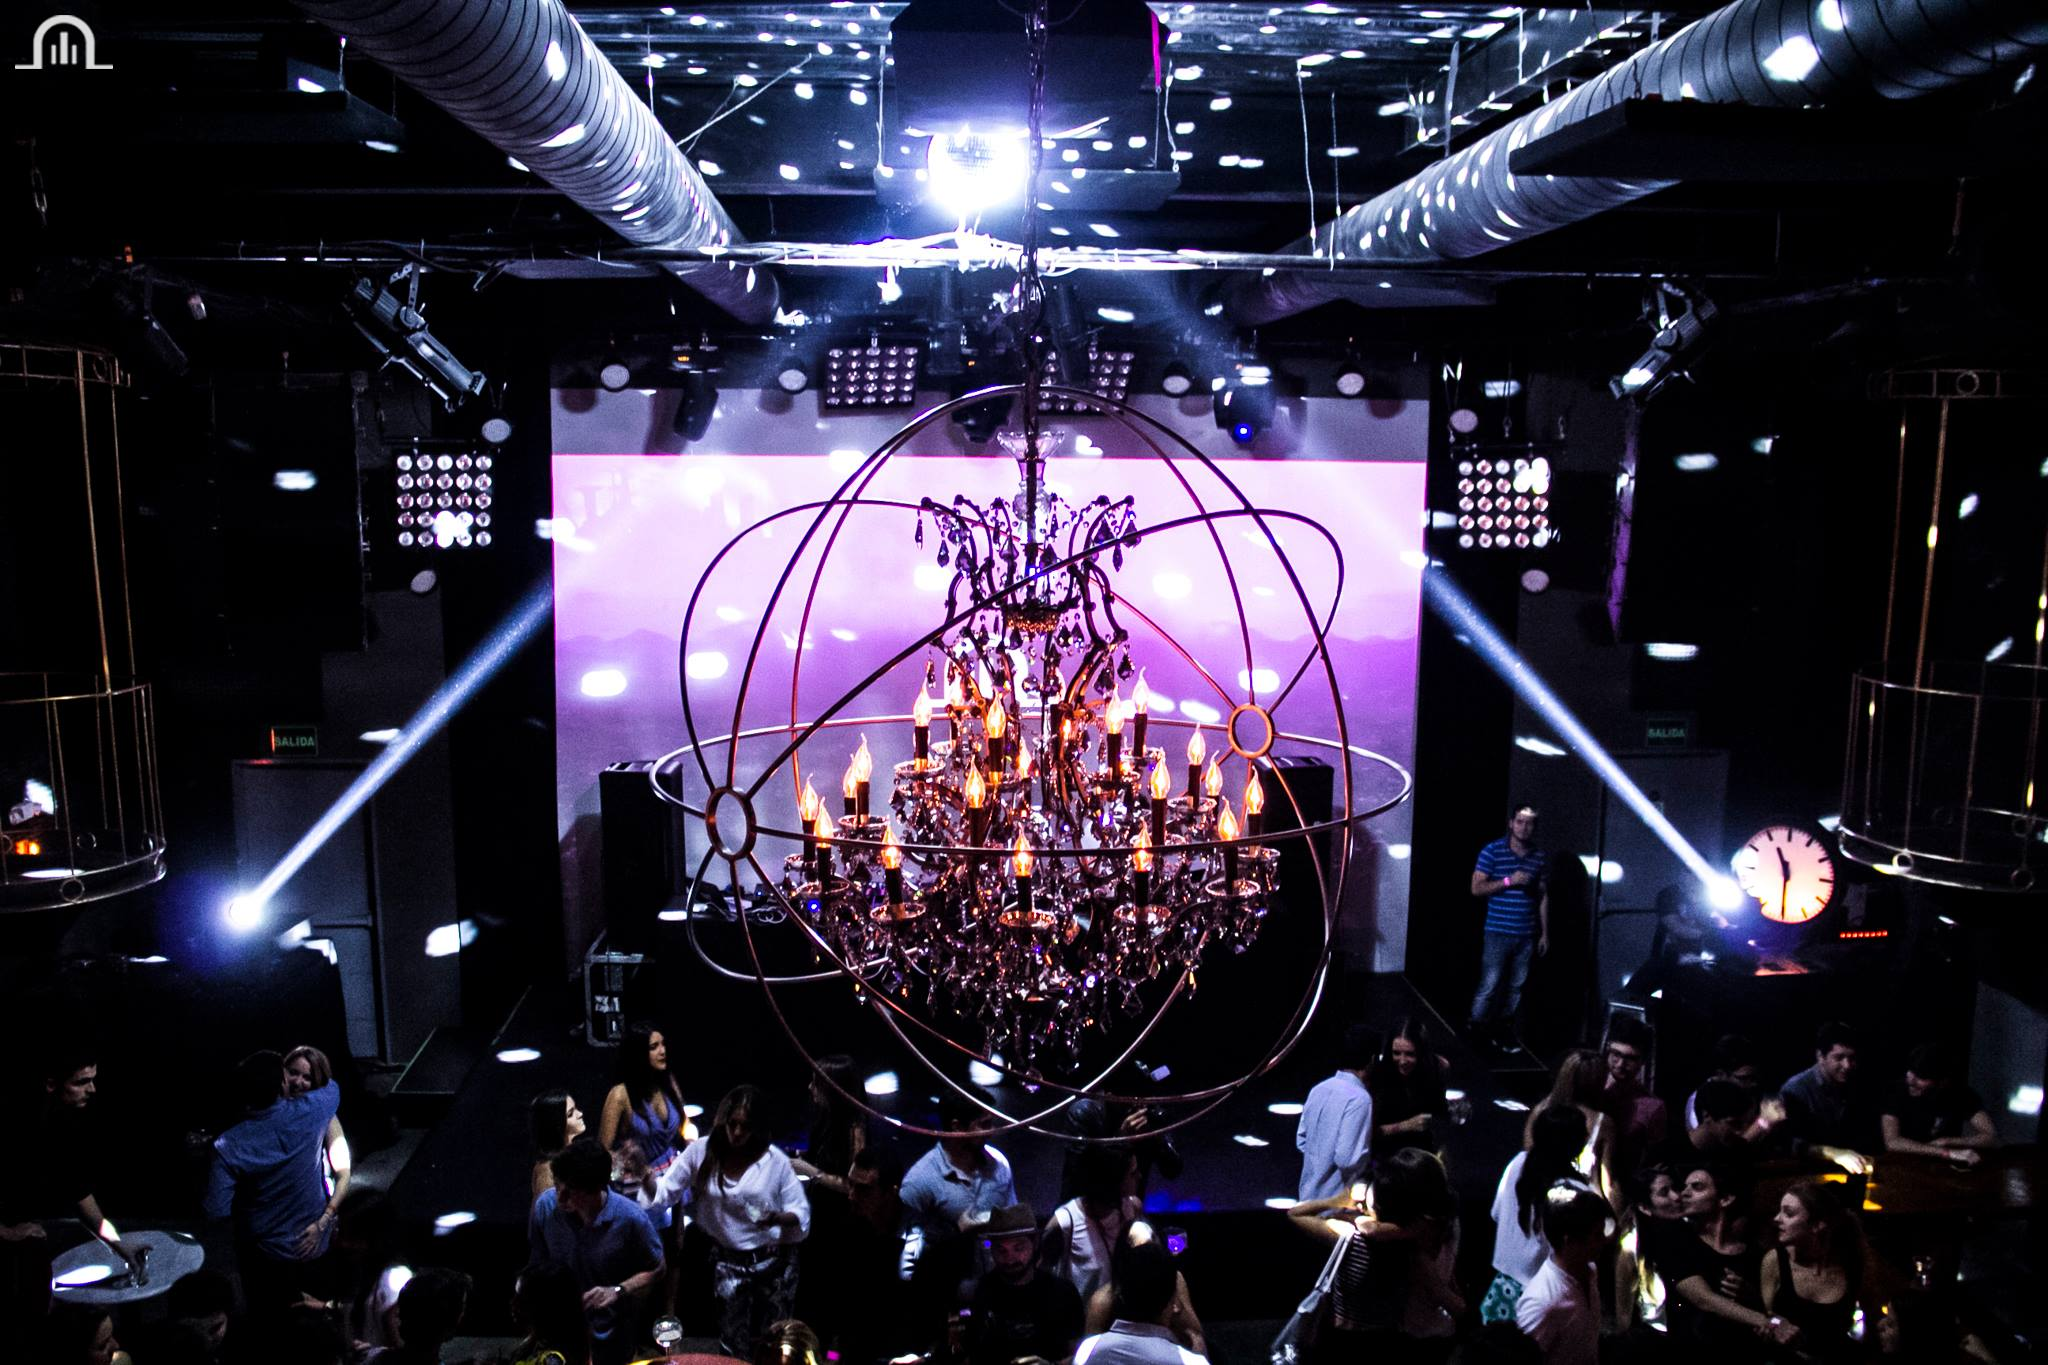 There is a giant chandelier in the center of the dance floor at Teatro Amador